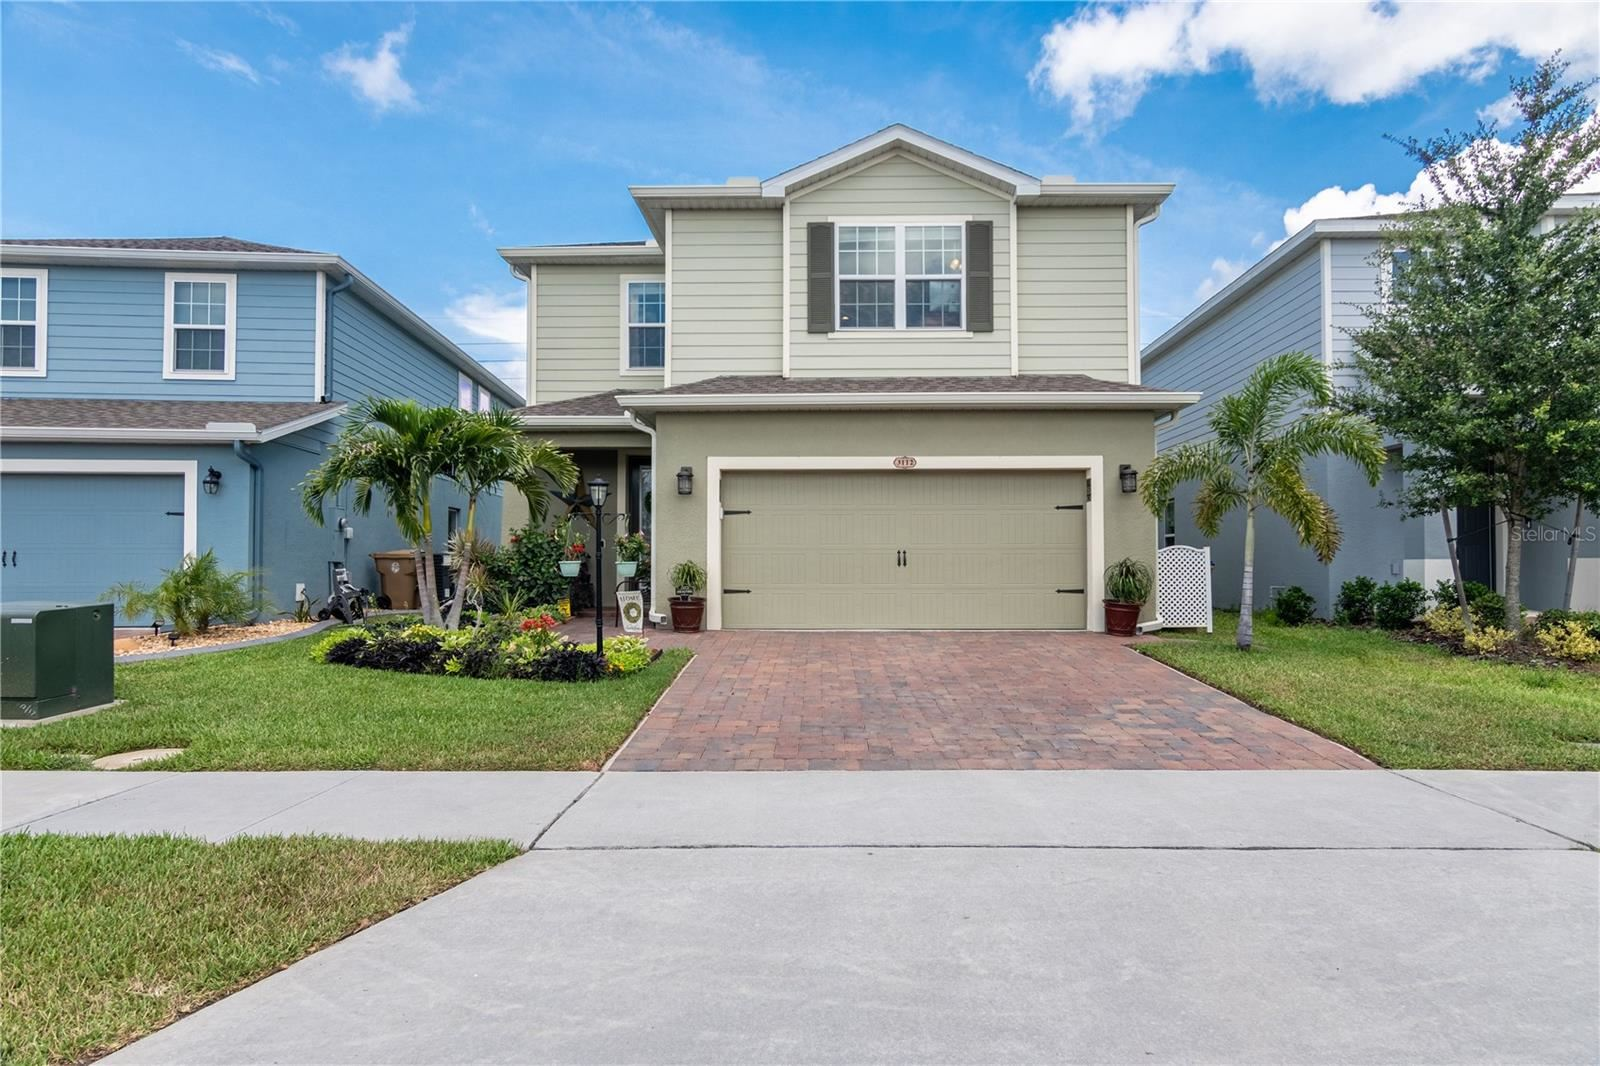 3112 ARMSTRONG SPRING DRIVE, Kissimmee, FL 34744 - #: S5051598